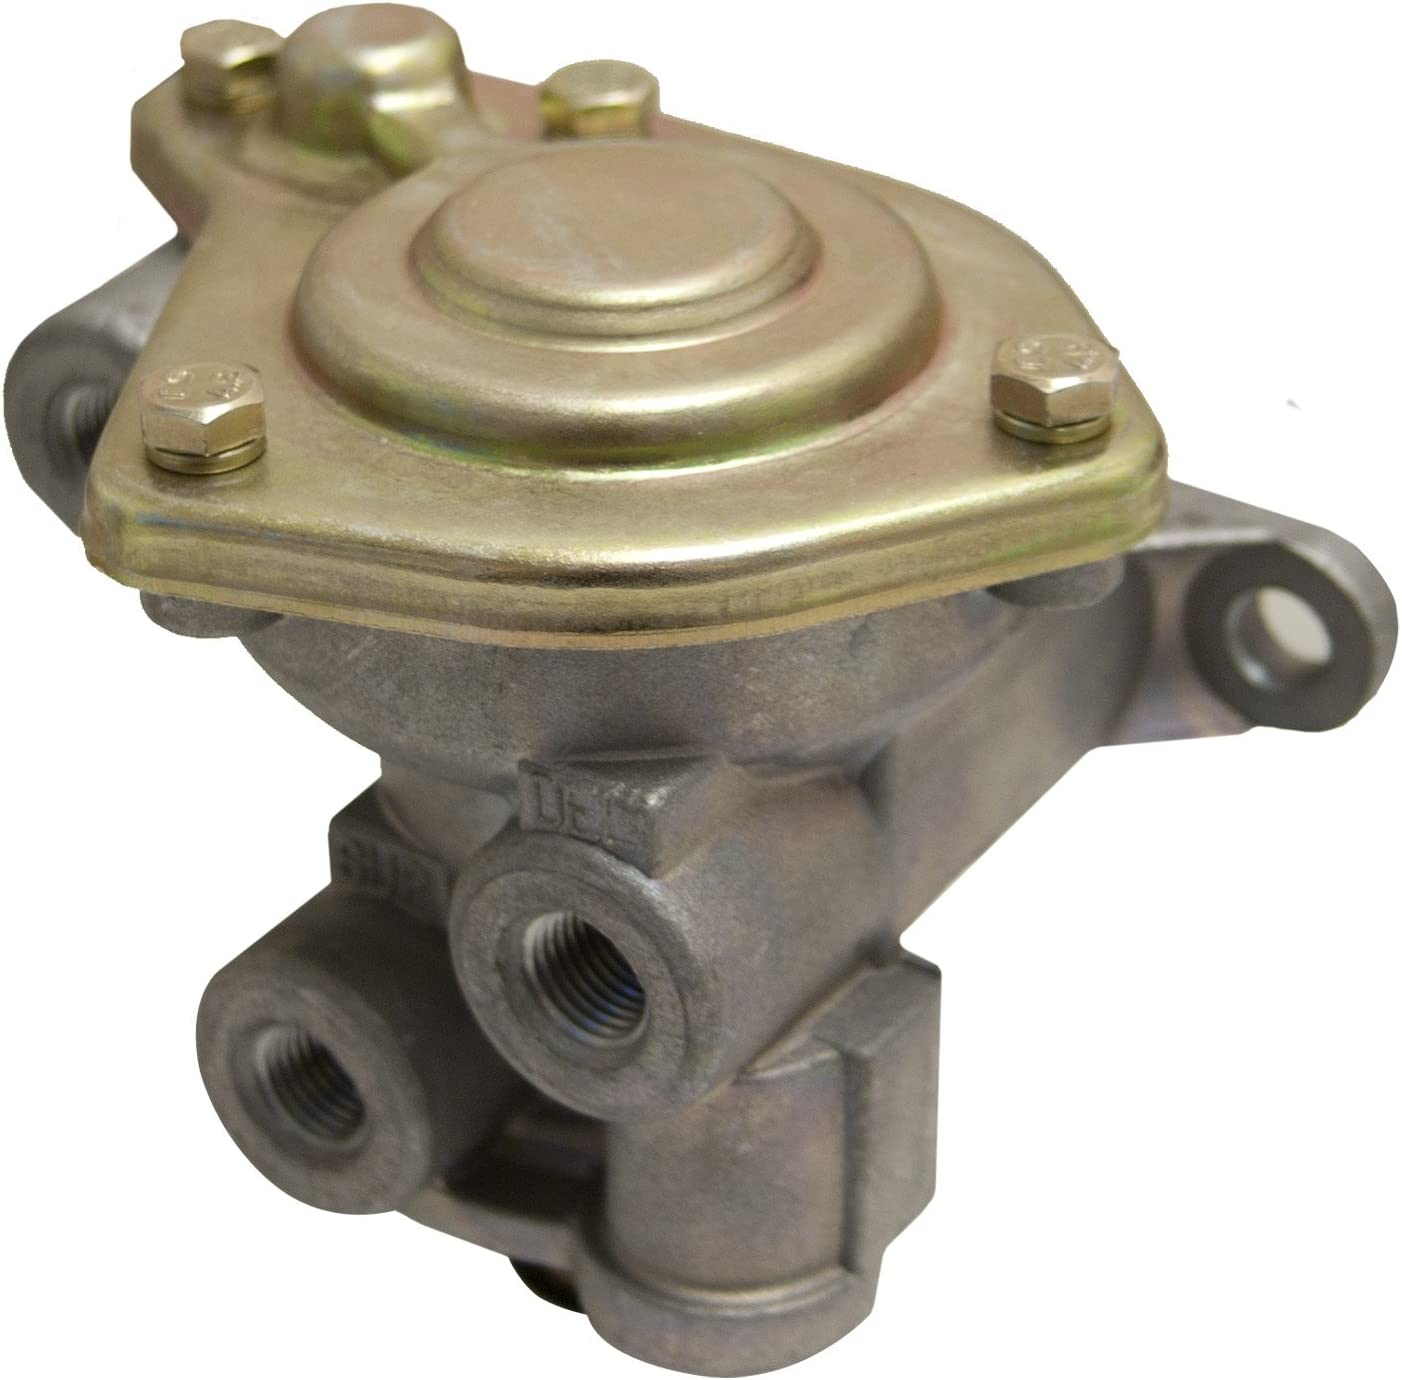 Al sold out. One Bendix Style SR-1 Spring 286364 Brake Valve Max 85% OFF Control